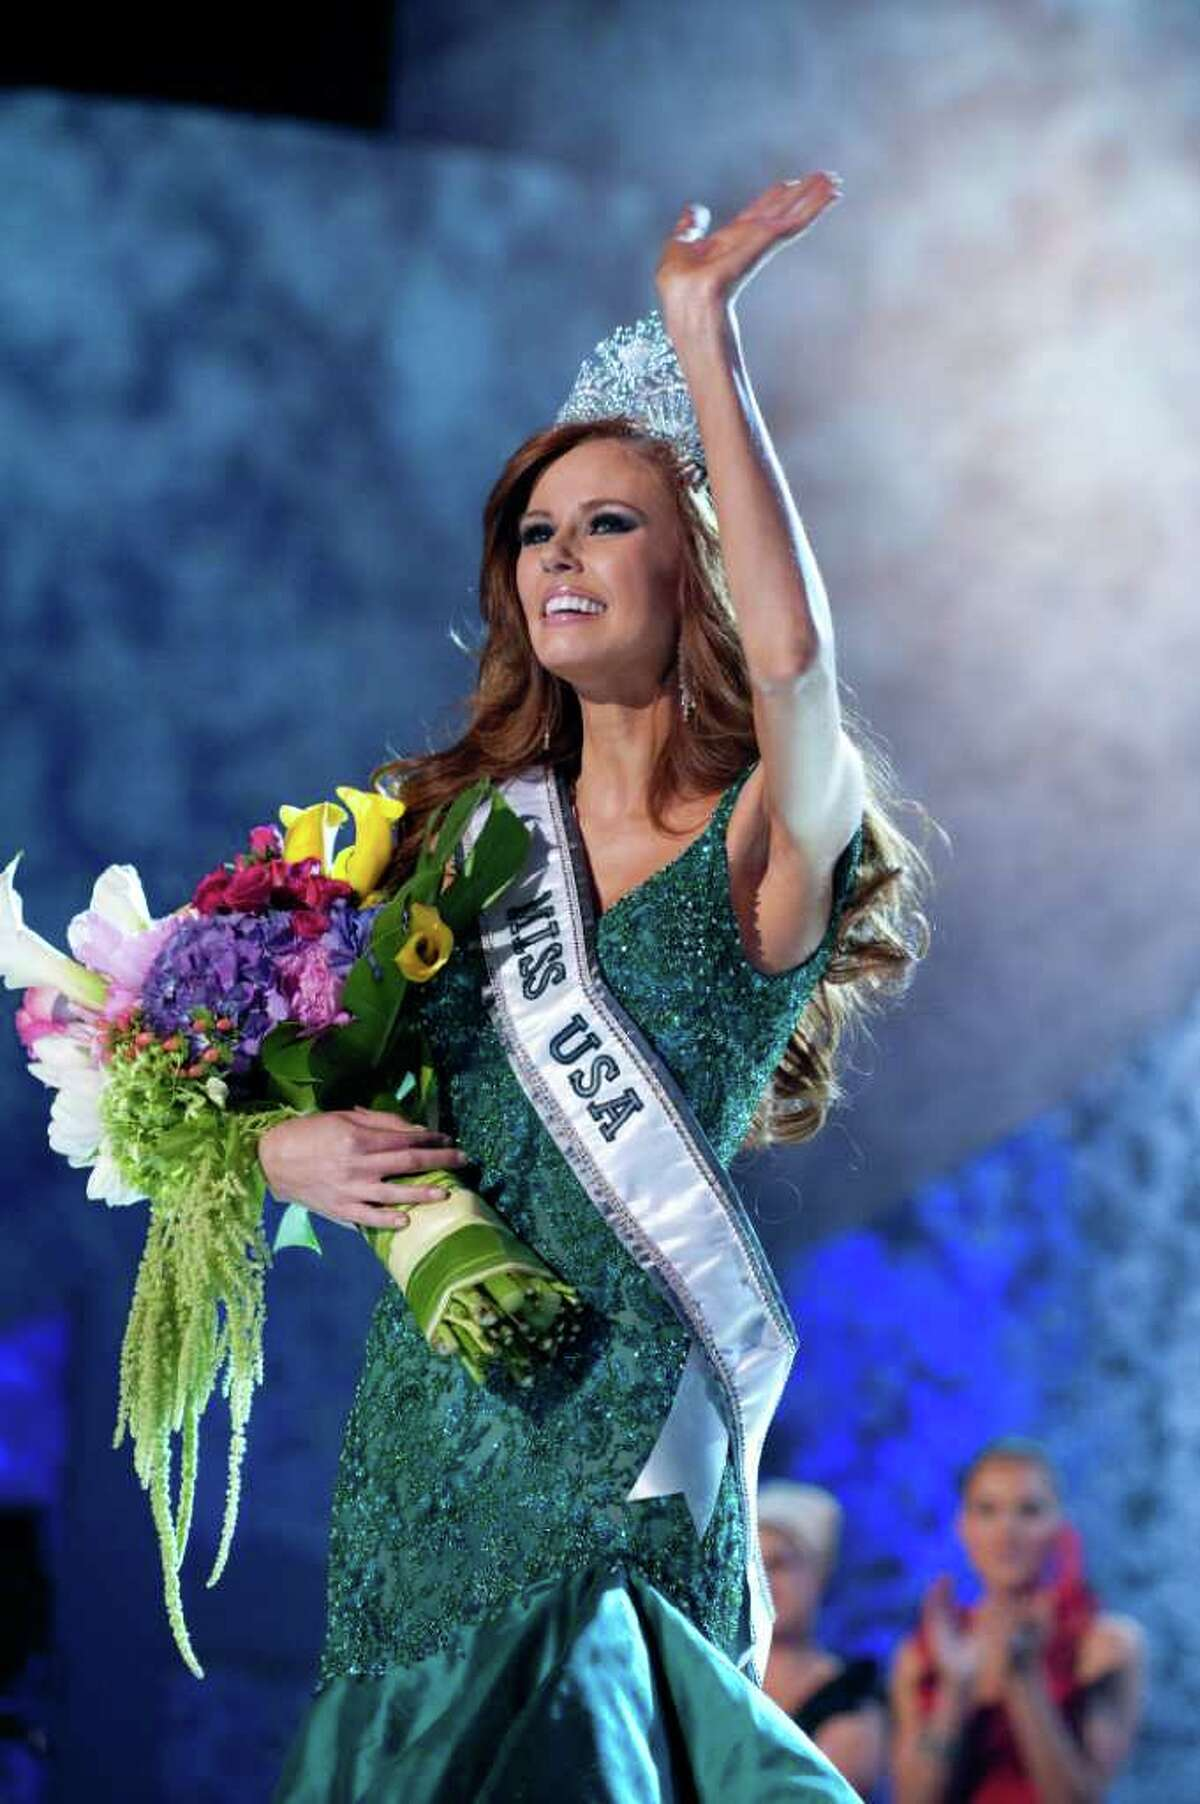 Miss California USA 2011, Alyssa Campanella, is the winner of the 2011 MISS USA® Competition. She celebrates on stage after the crowning, which was broadcast LIVE on NBC from the Planet Hollywood Resort & Casino Theatre for the Performing Arts, in Las Vegas, Nevada on Sunday, June 19, 2011. The winner will compete in the 2011 MISS UNIVERSE® Pageant in Sao Paulo, Brazil on September 12.